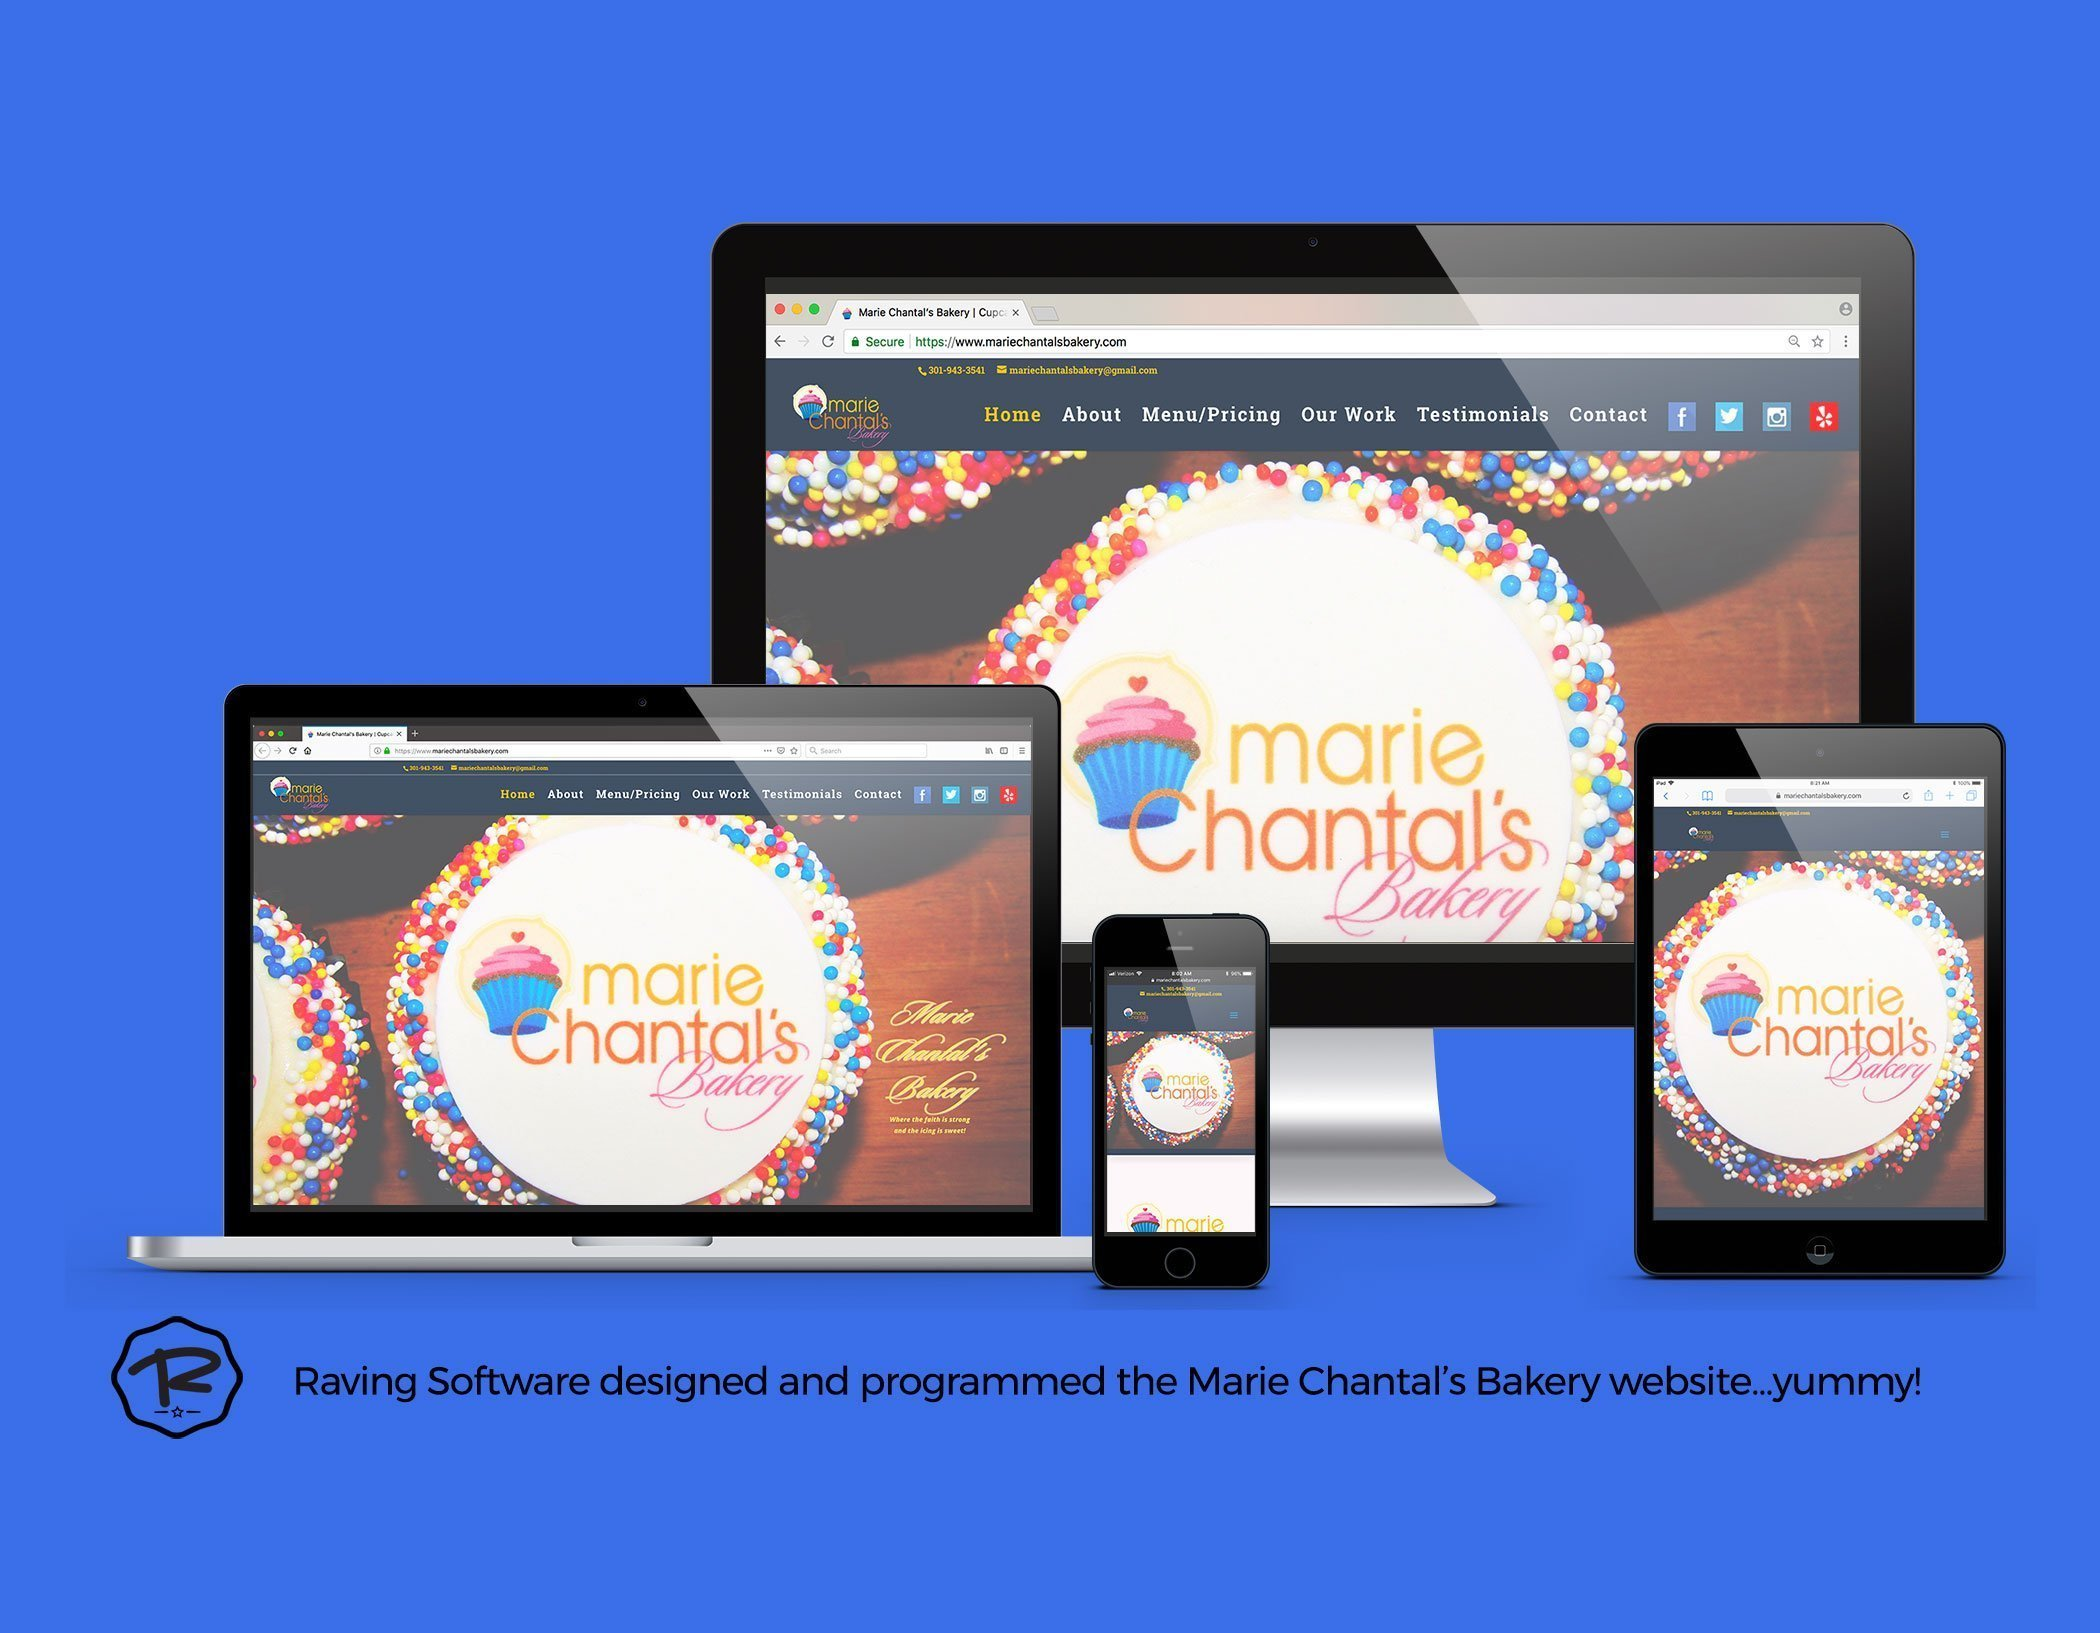 Marie Chantals Bakery website created by Raving Software